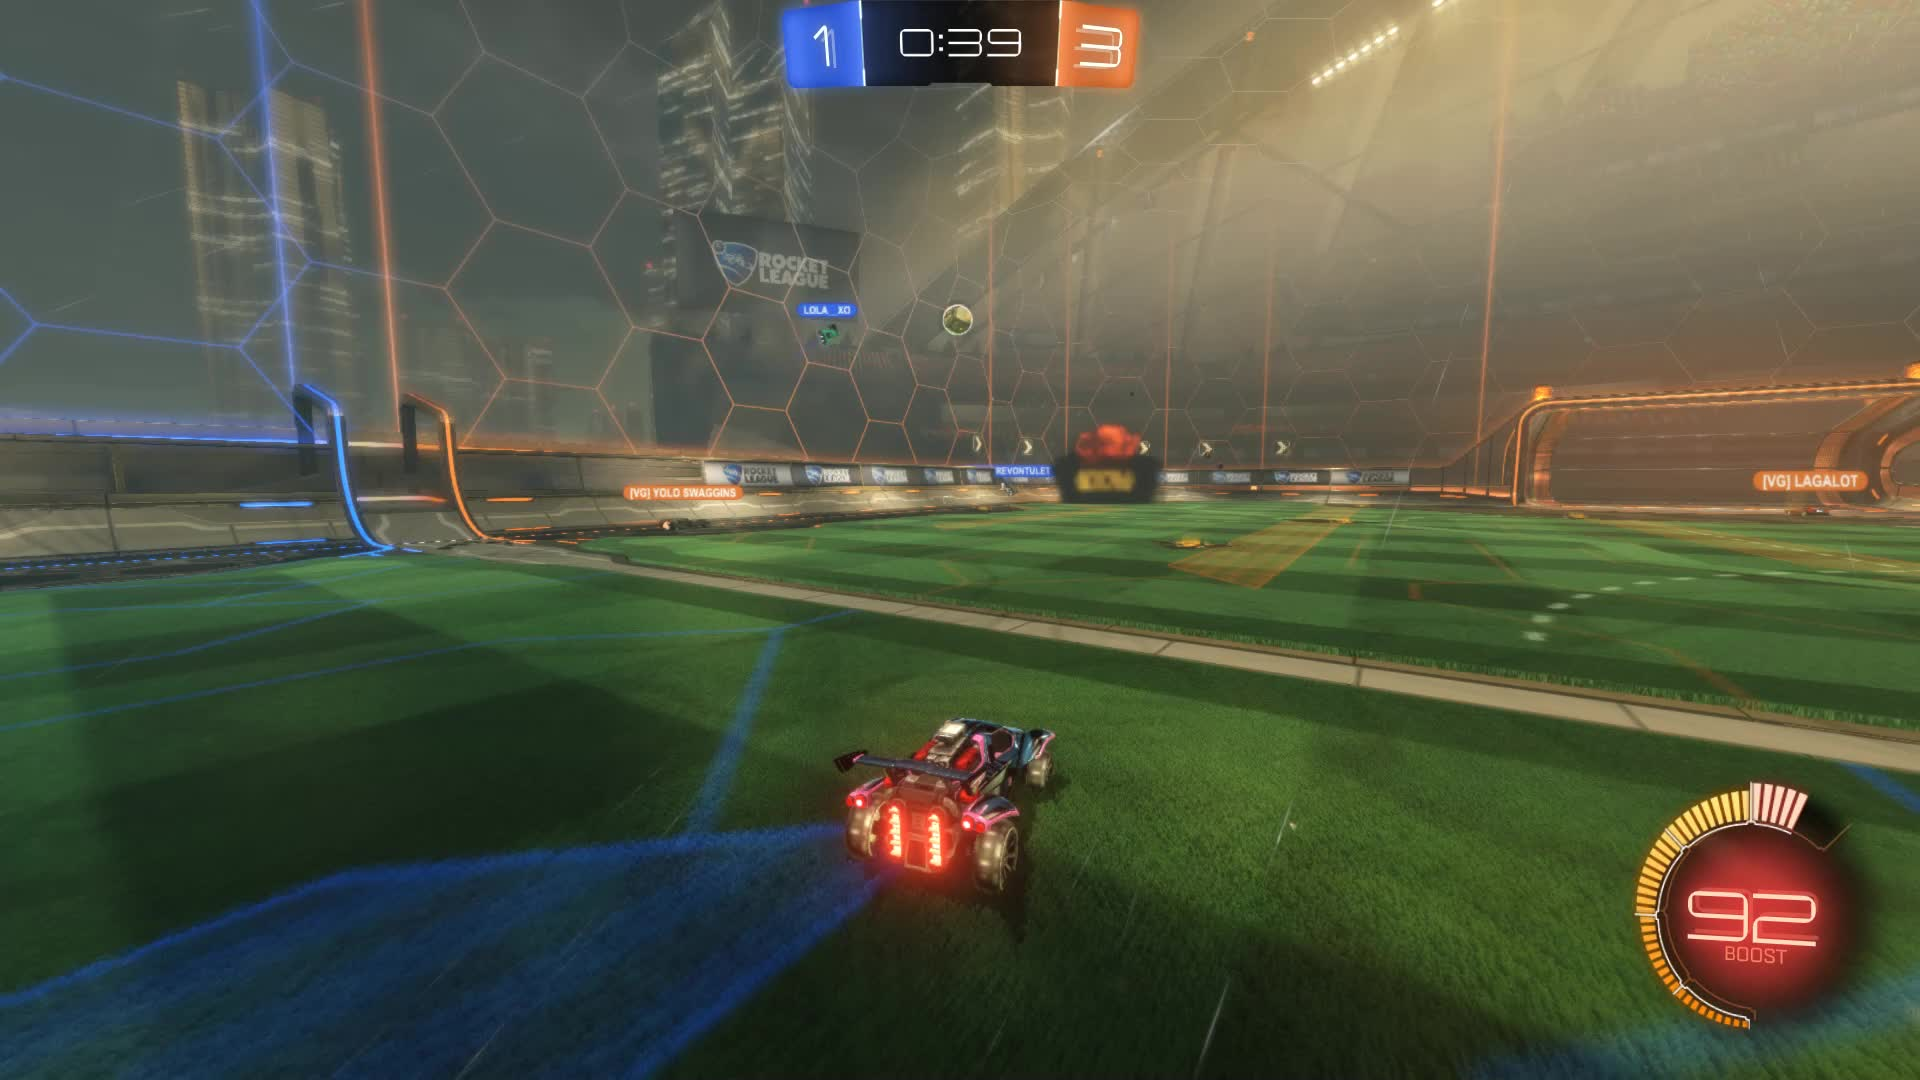 Gif Your Game, GifYourGame, Goal, Rocket League, RocketLeague, SCOTLAND FOREVER, Goal 5: SCOTLAND FOREVER GIFs